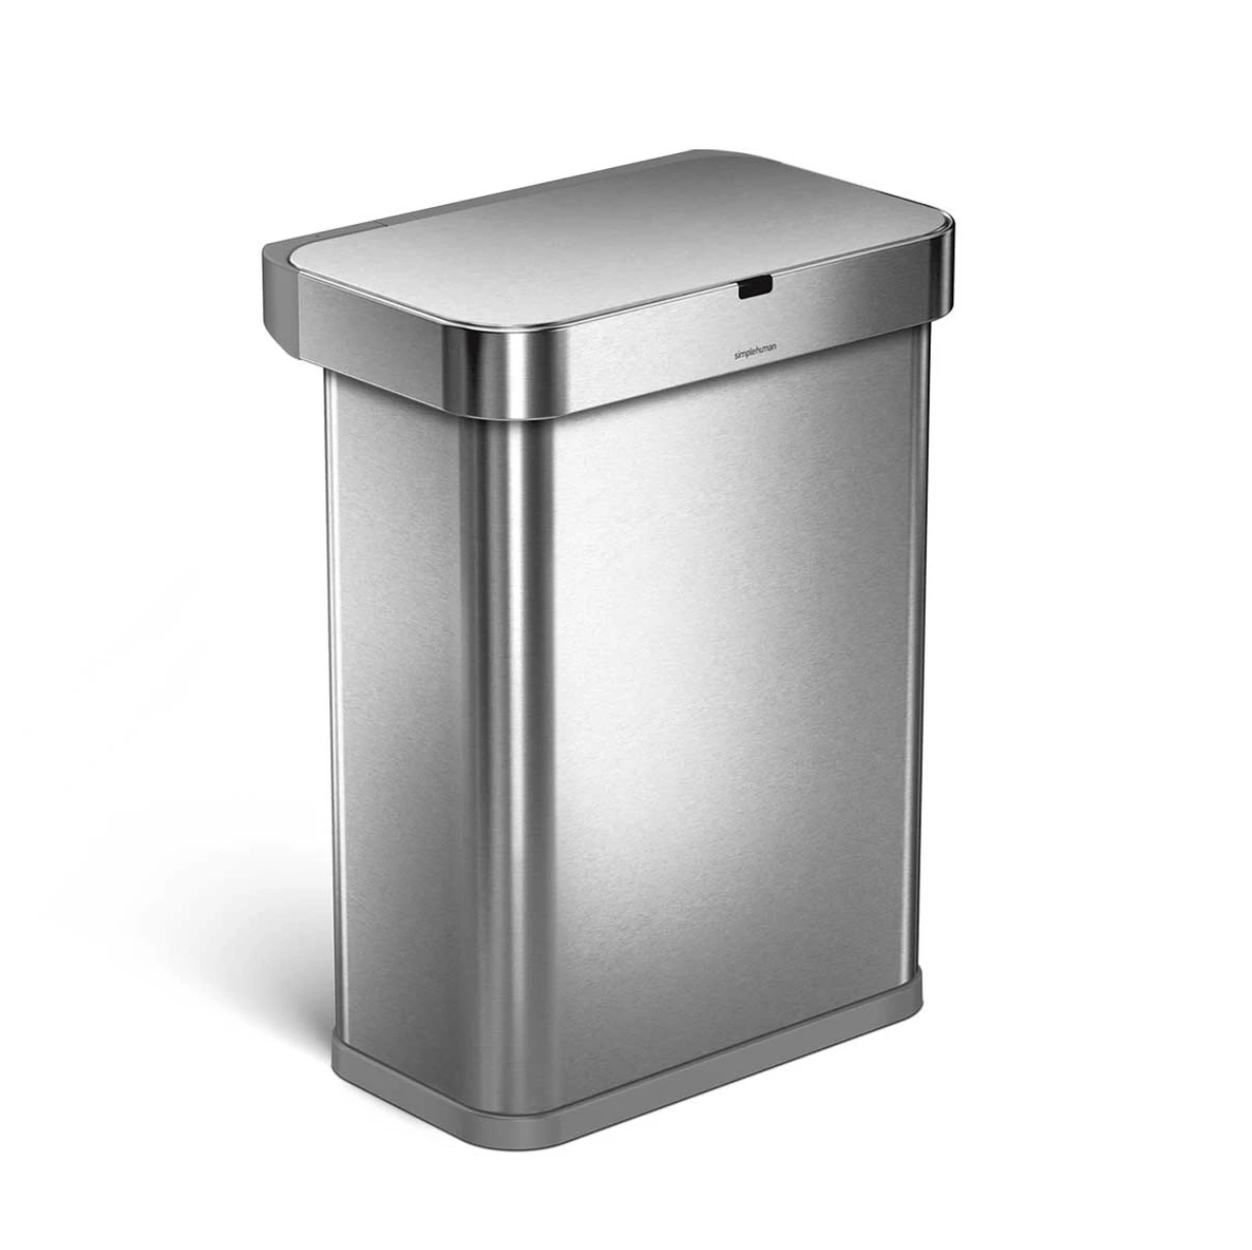 Simplehuman voice + motion sensor trash can